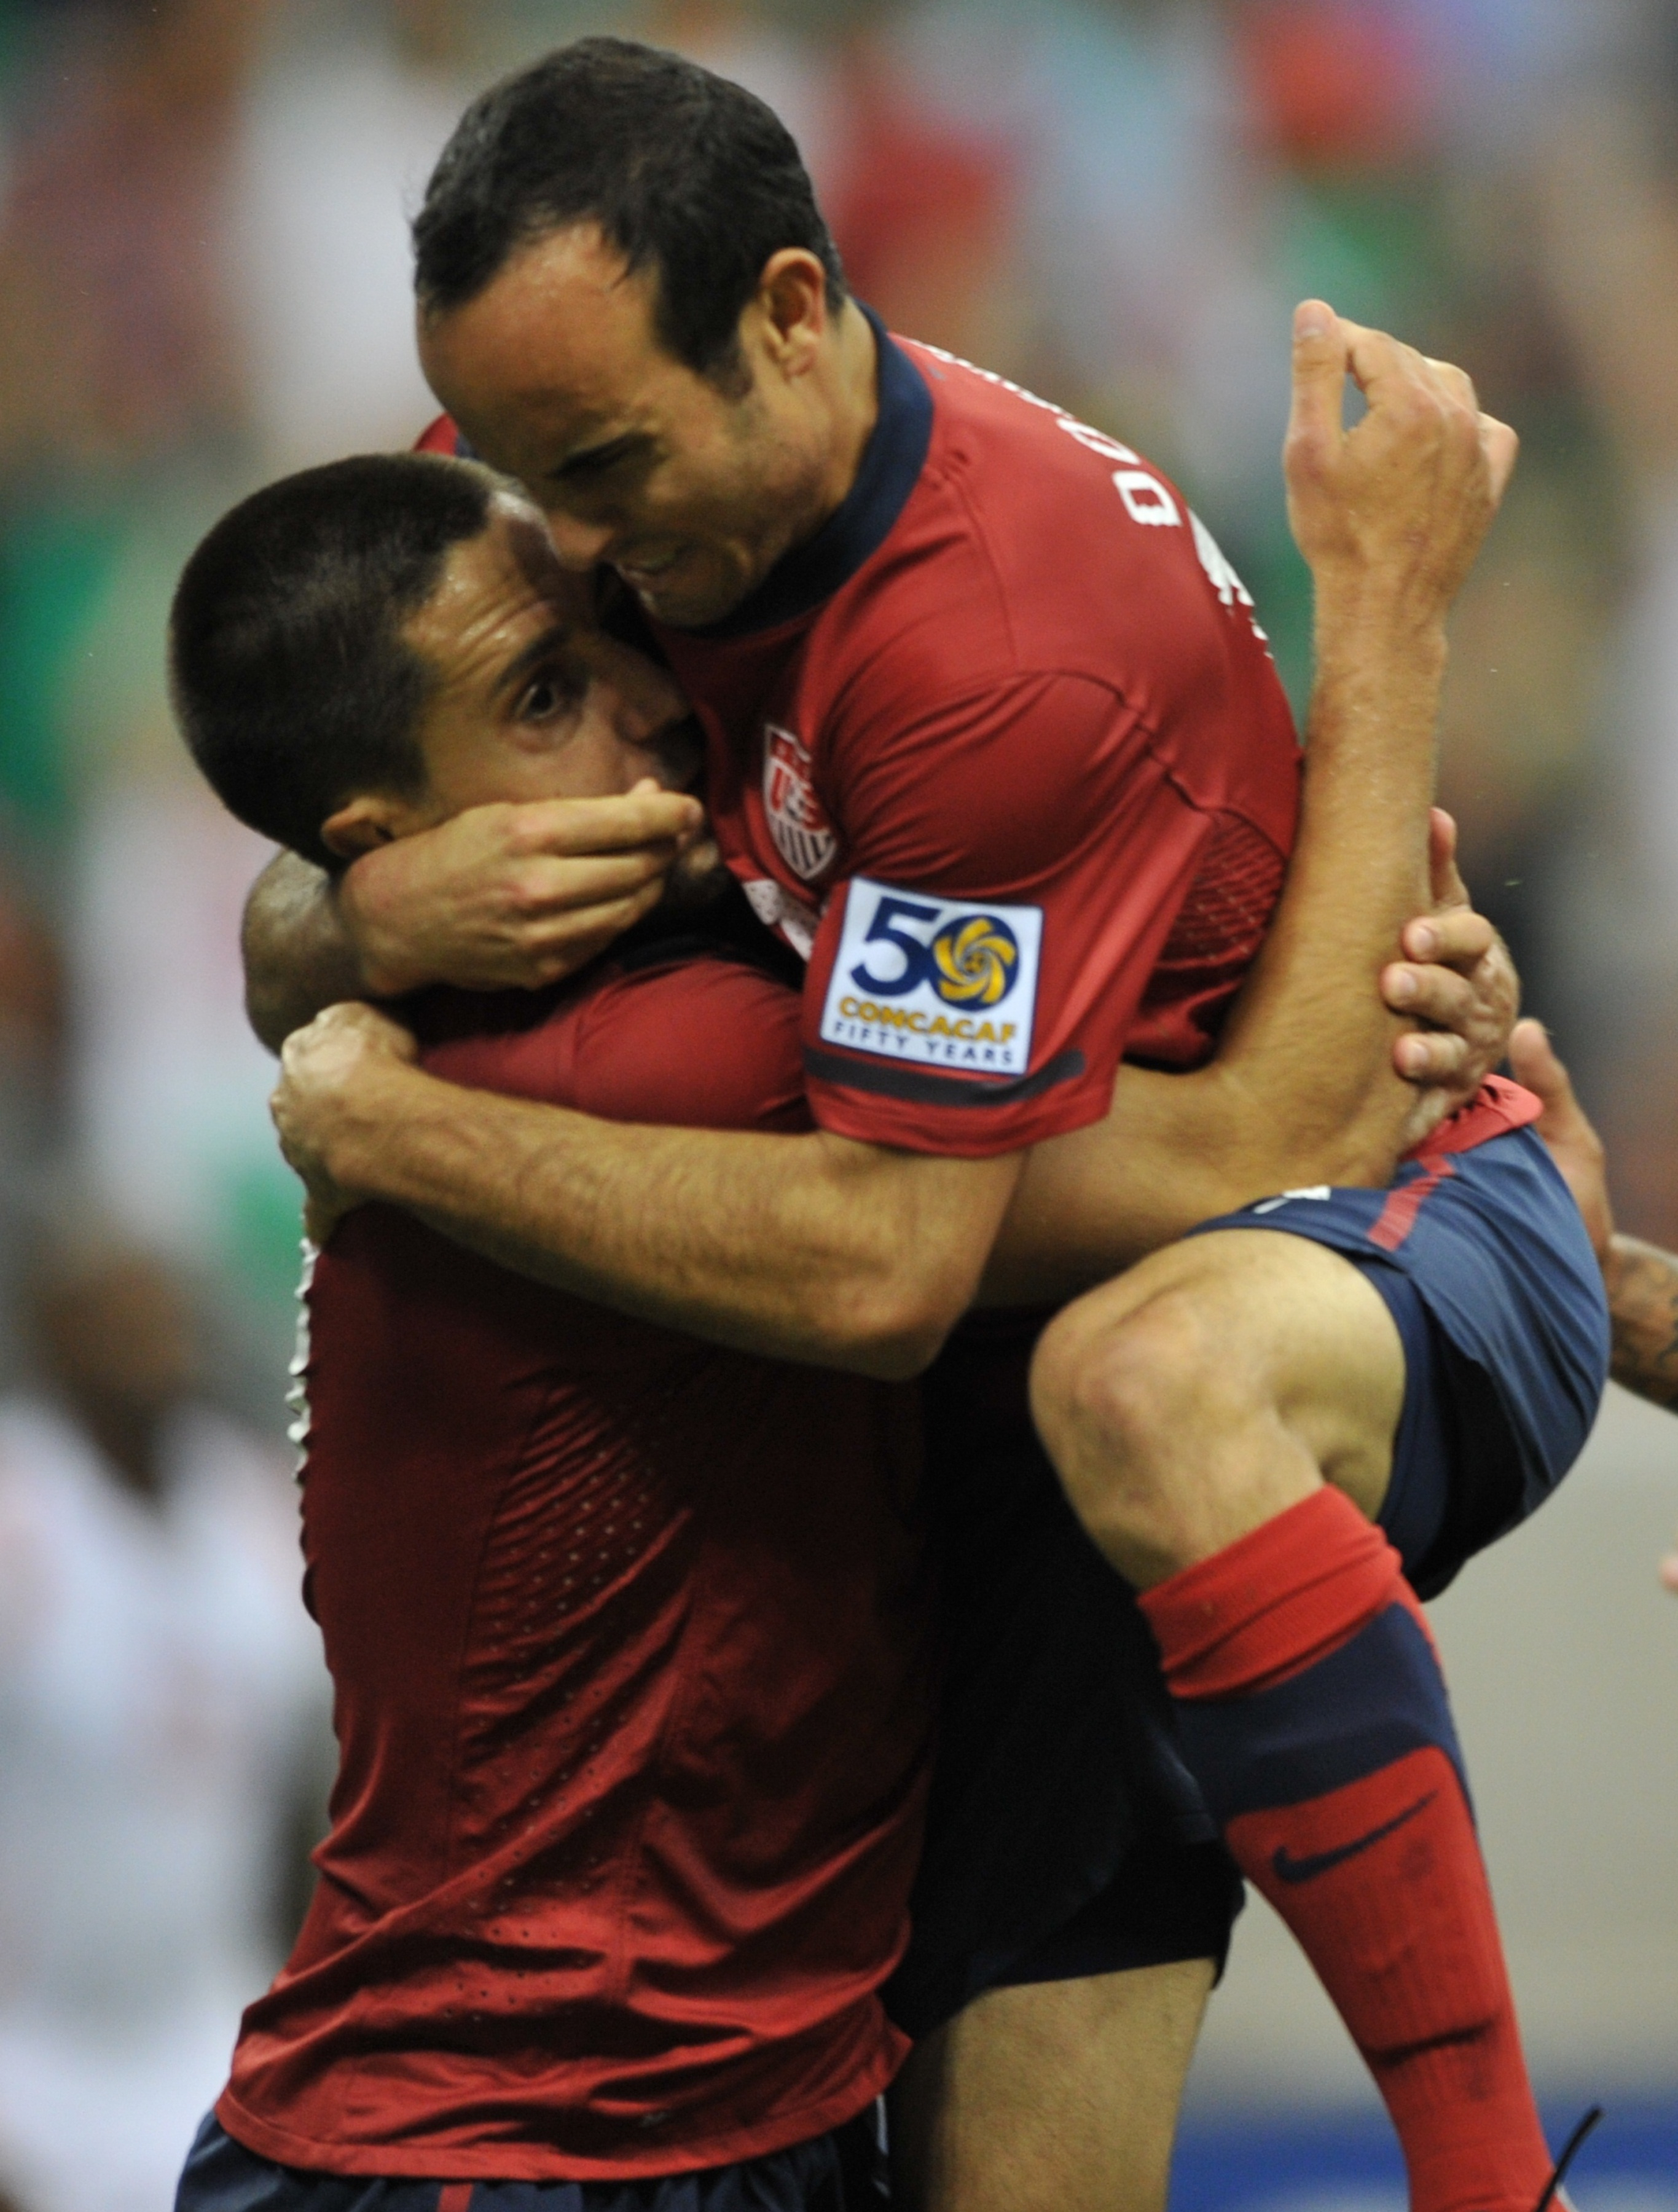 Clint Dempsey (L) of the US is hugged by